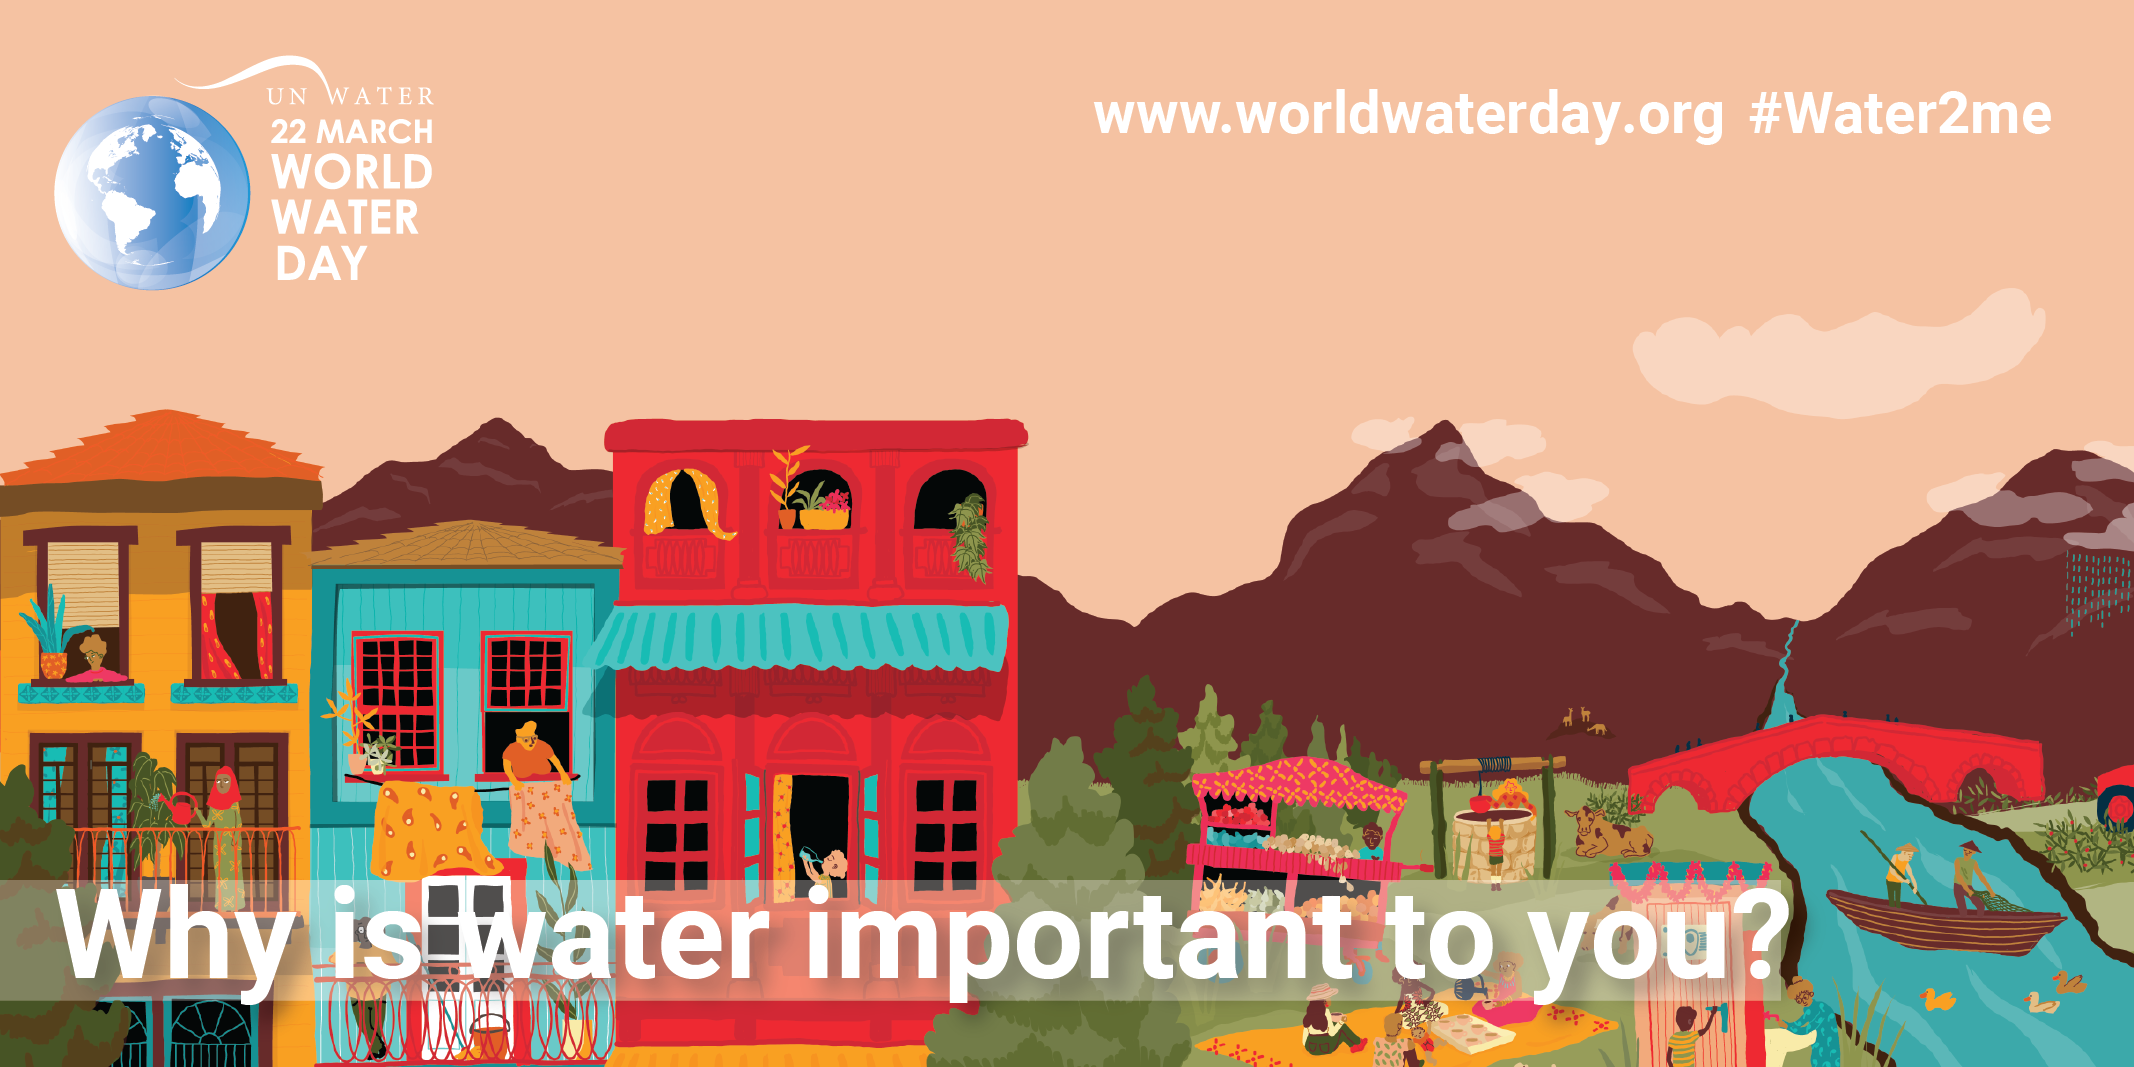 Building Product Manufacturers and World Water Day